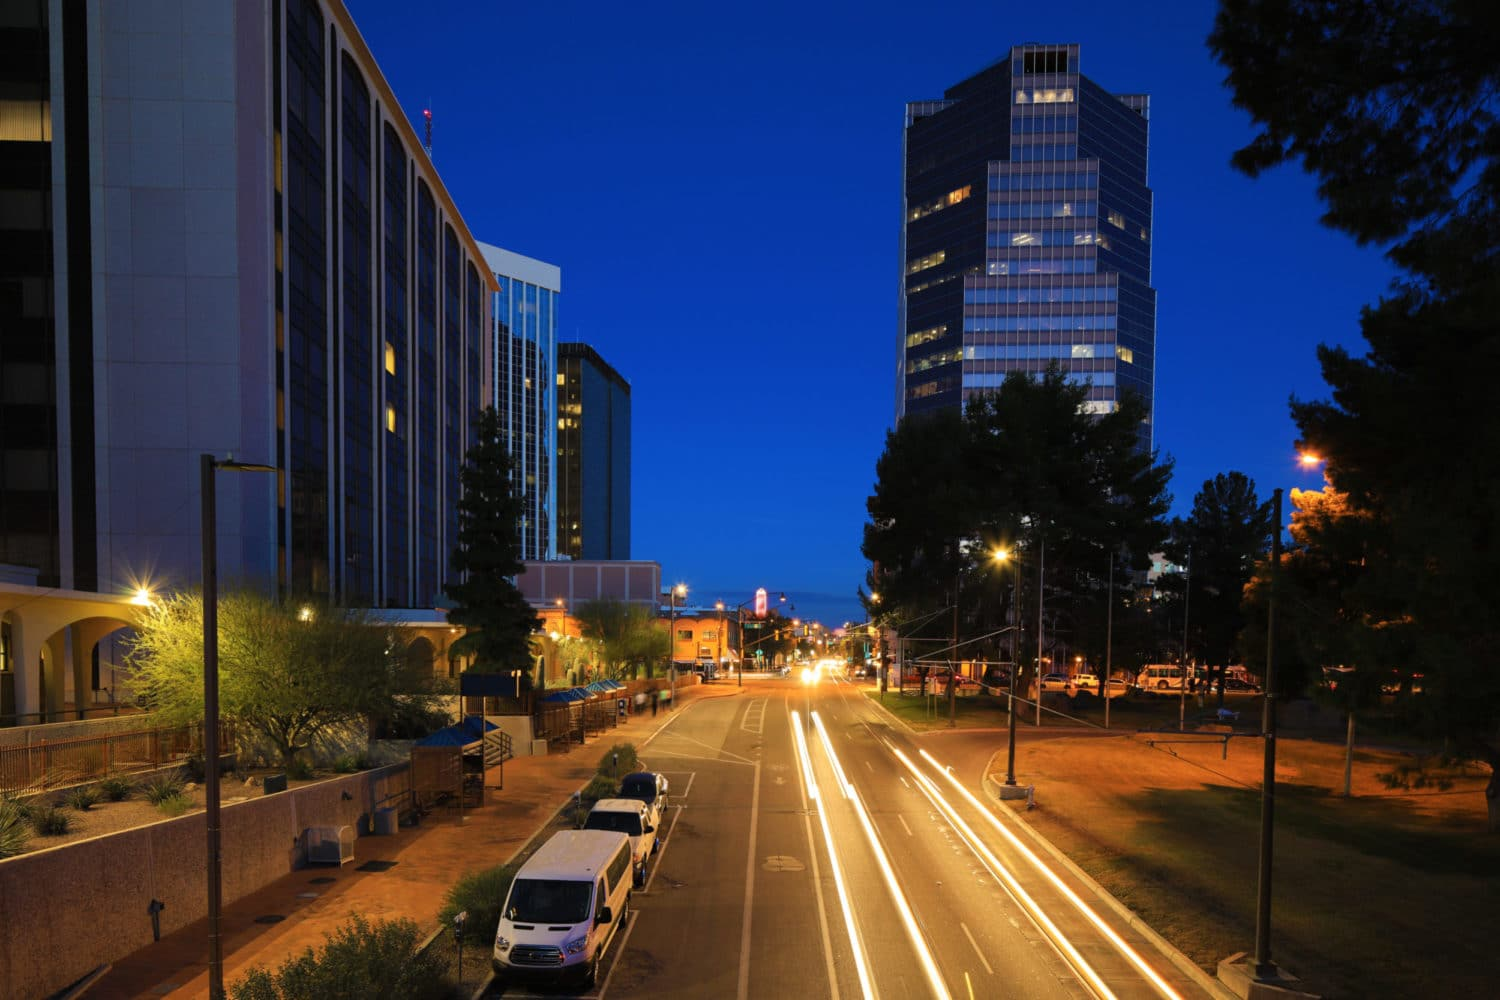 Photo of downtown Tucson at night.